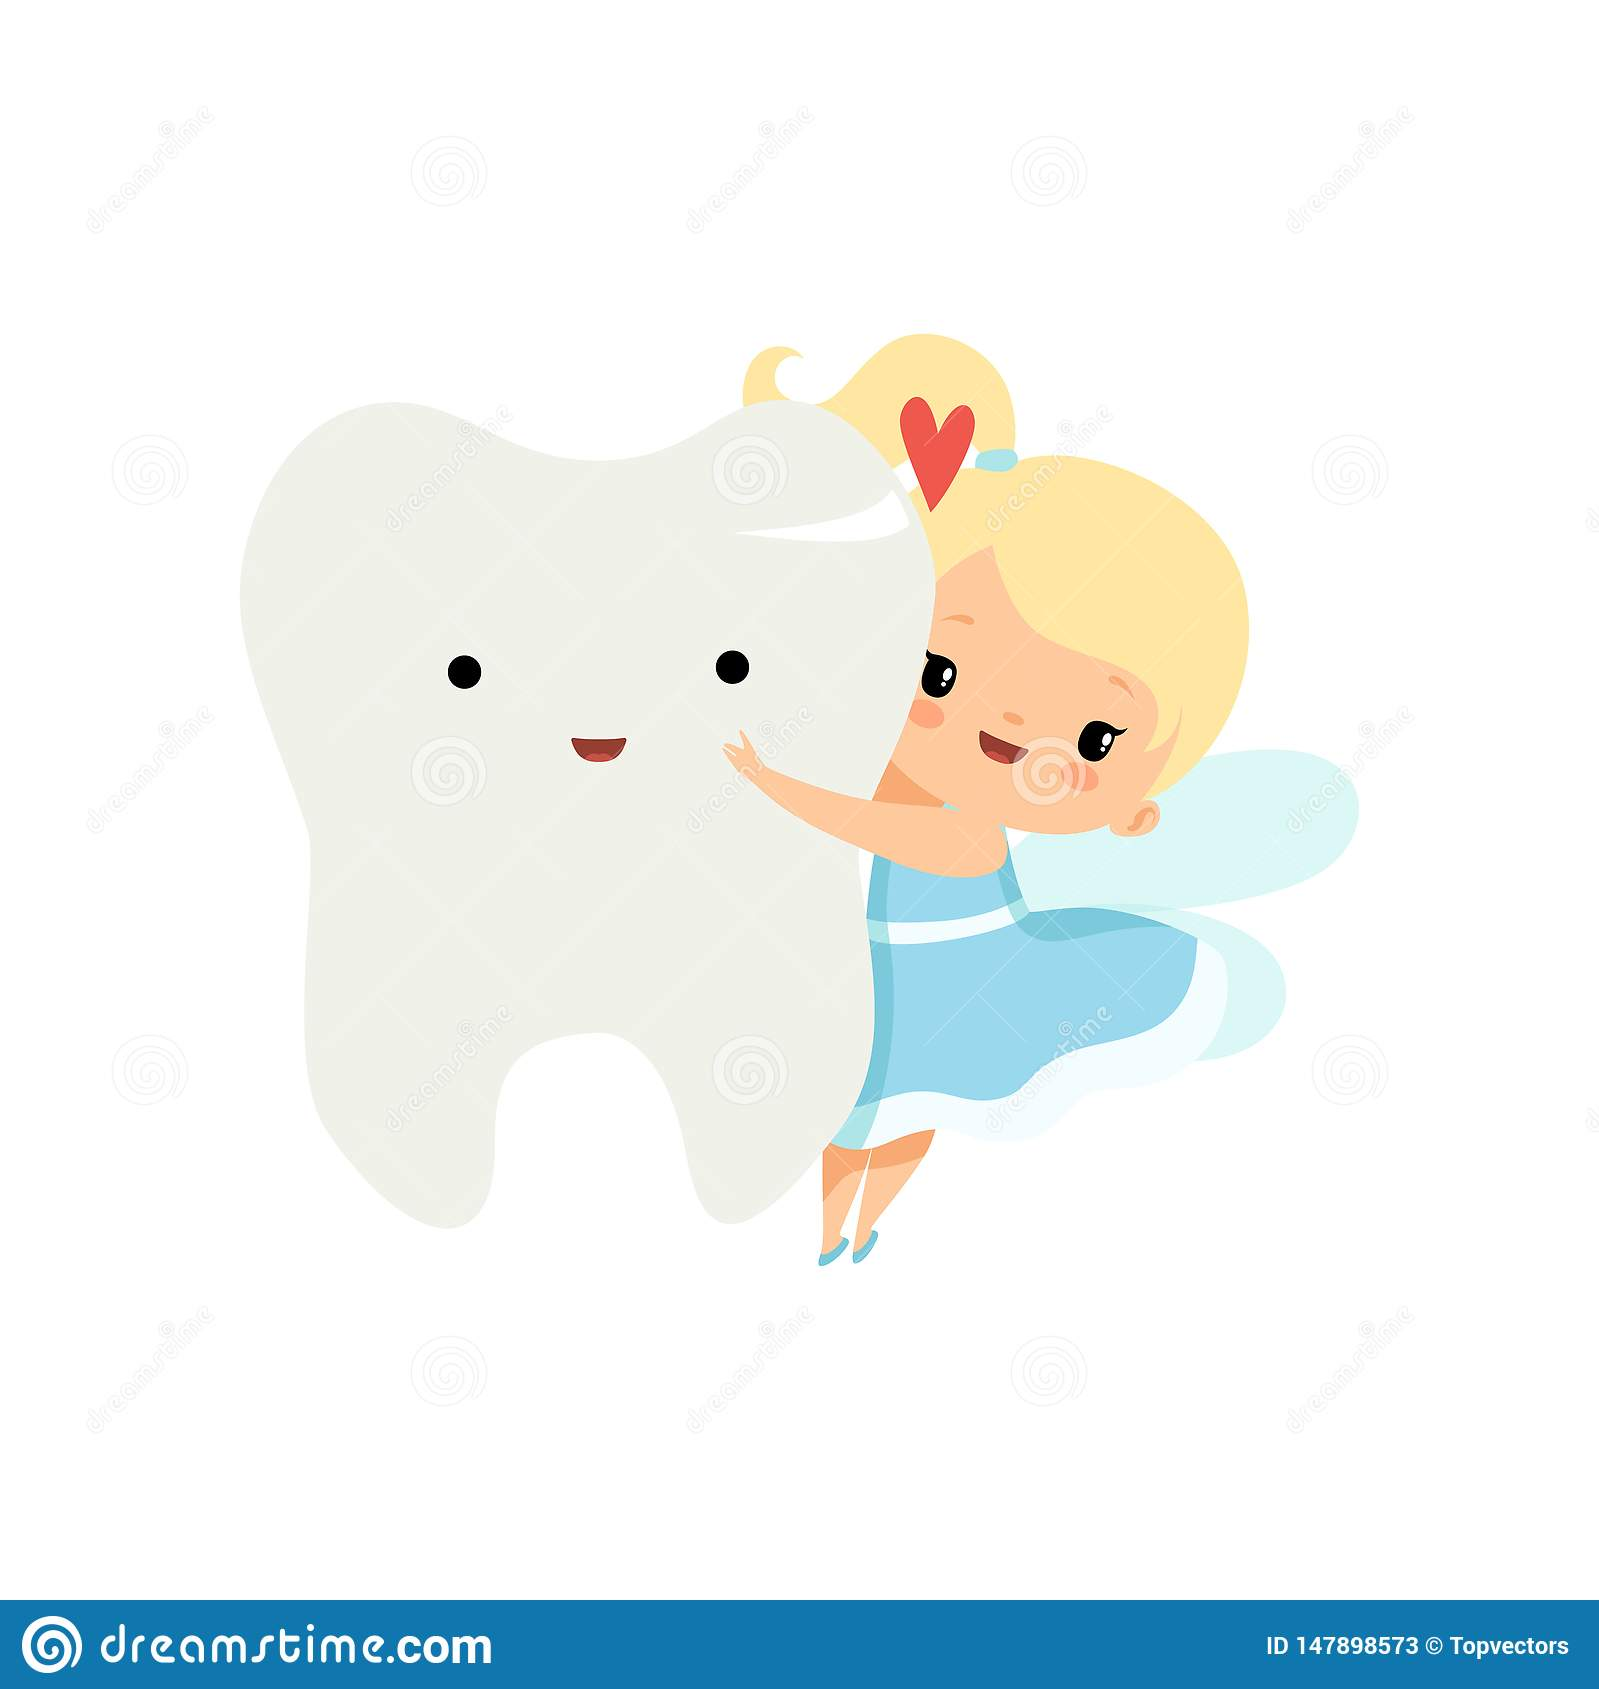 Cute Little Tooth Fairy Flying with Big Tooth, Lovely Blonde Fairy Girl Cartoon Character in Light Blue Dress with Wings